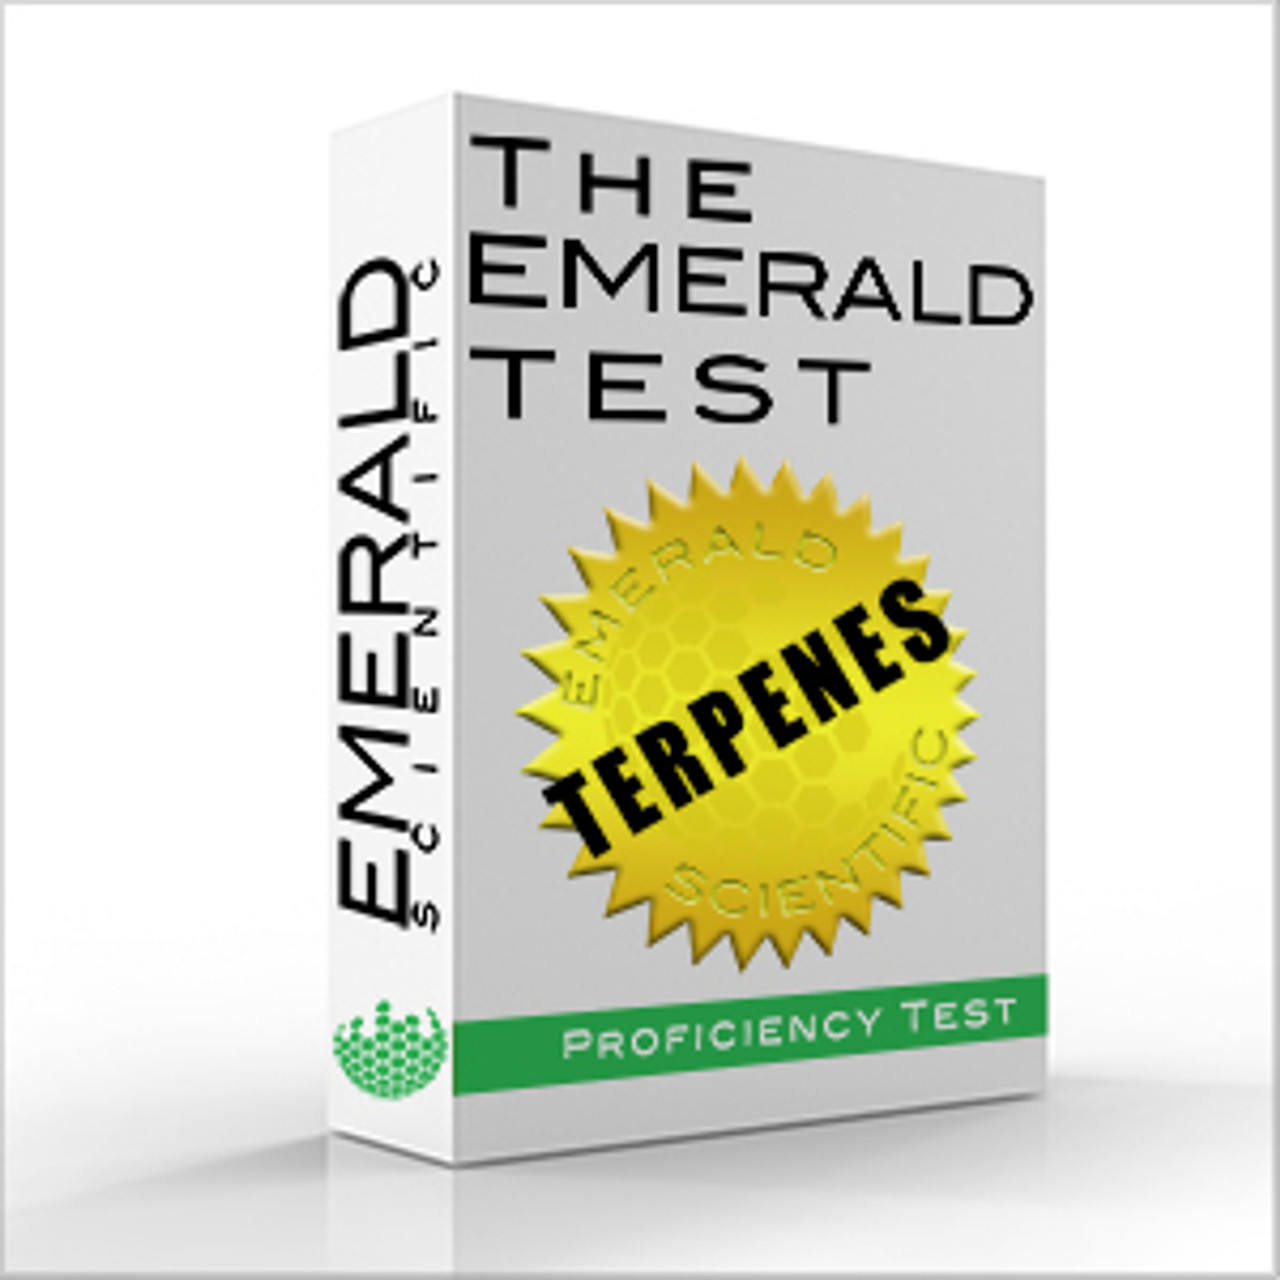 Our Proficiency Tests Are Approved for Colorado Regulatory Compliance!